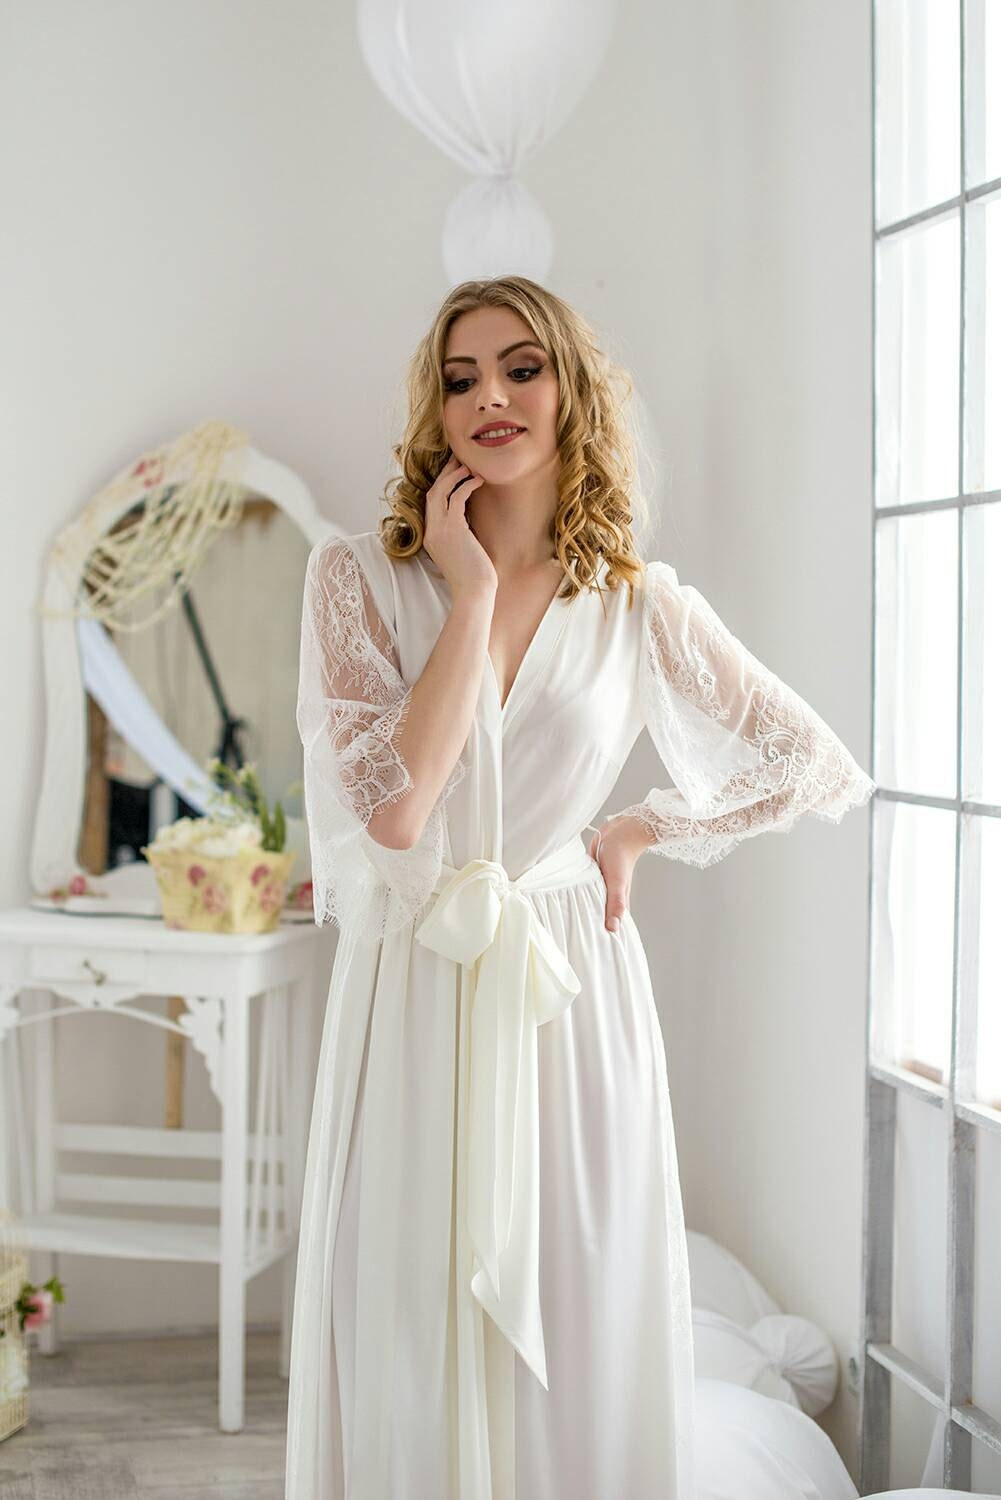 Bridal Robe womens robe wedding robe getting ready robe